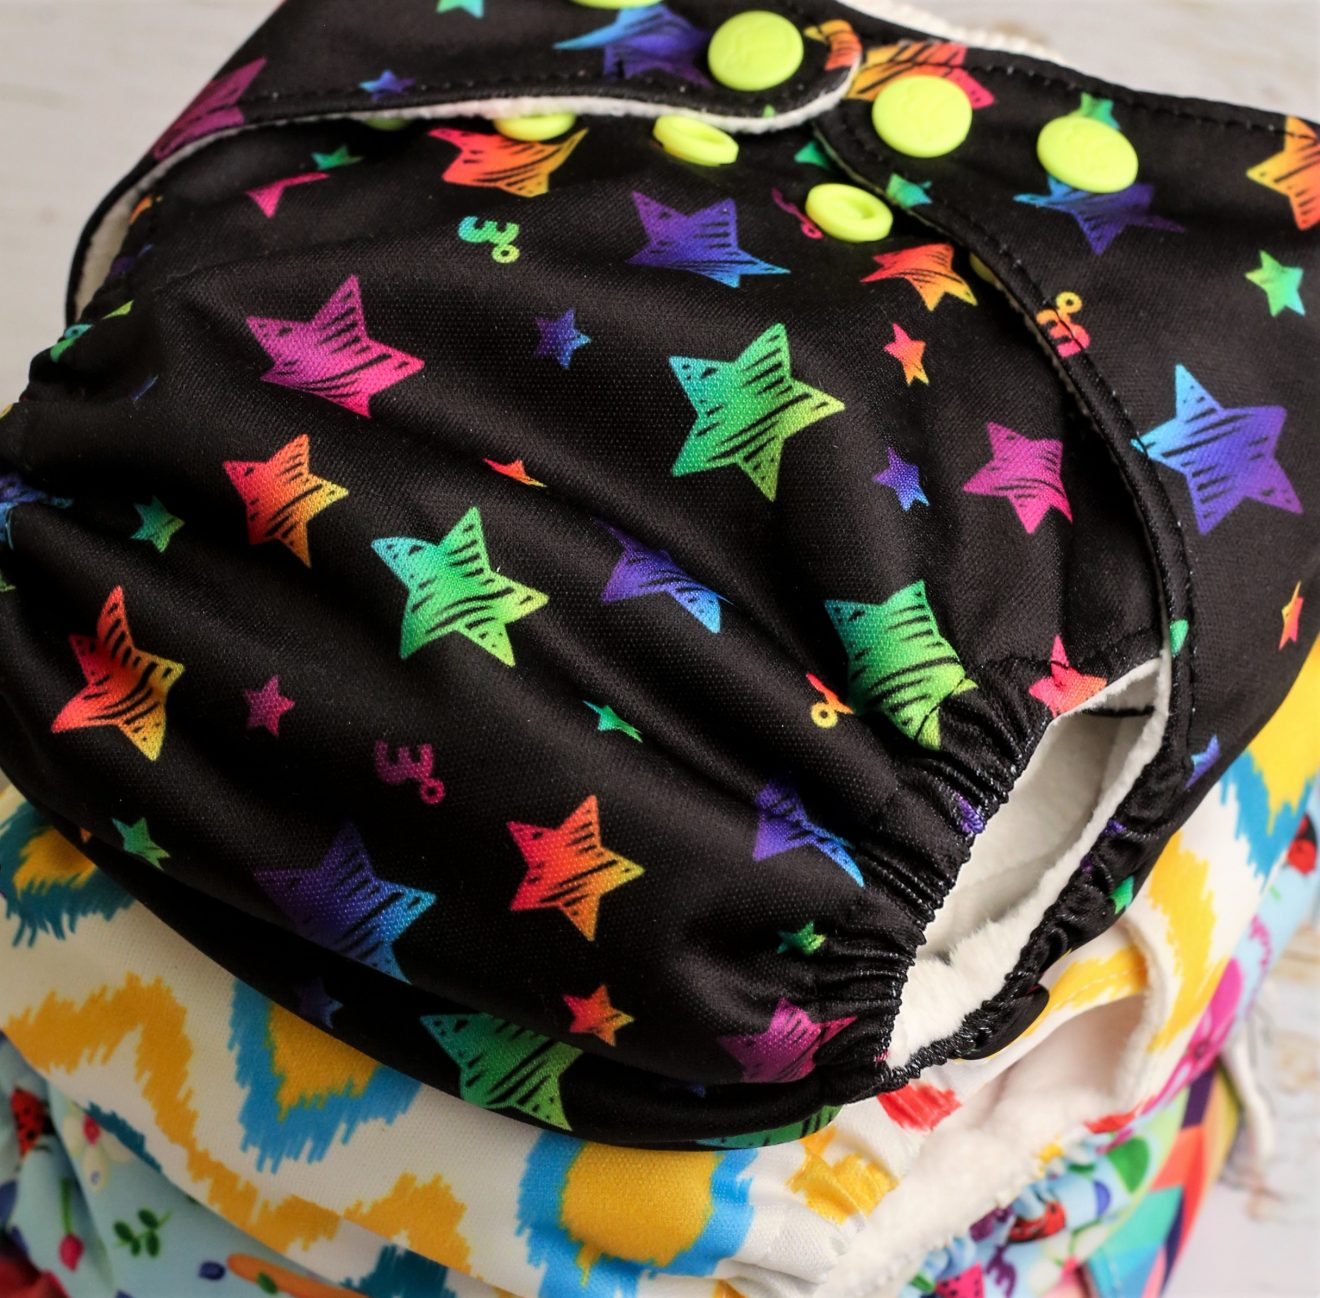 SuperBottoms launches the ultimate cloth diaper for babies